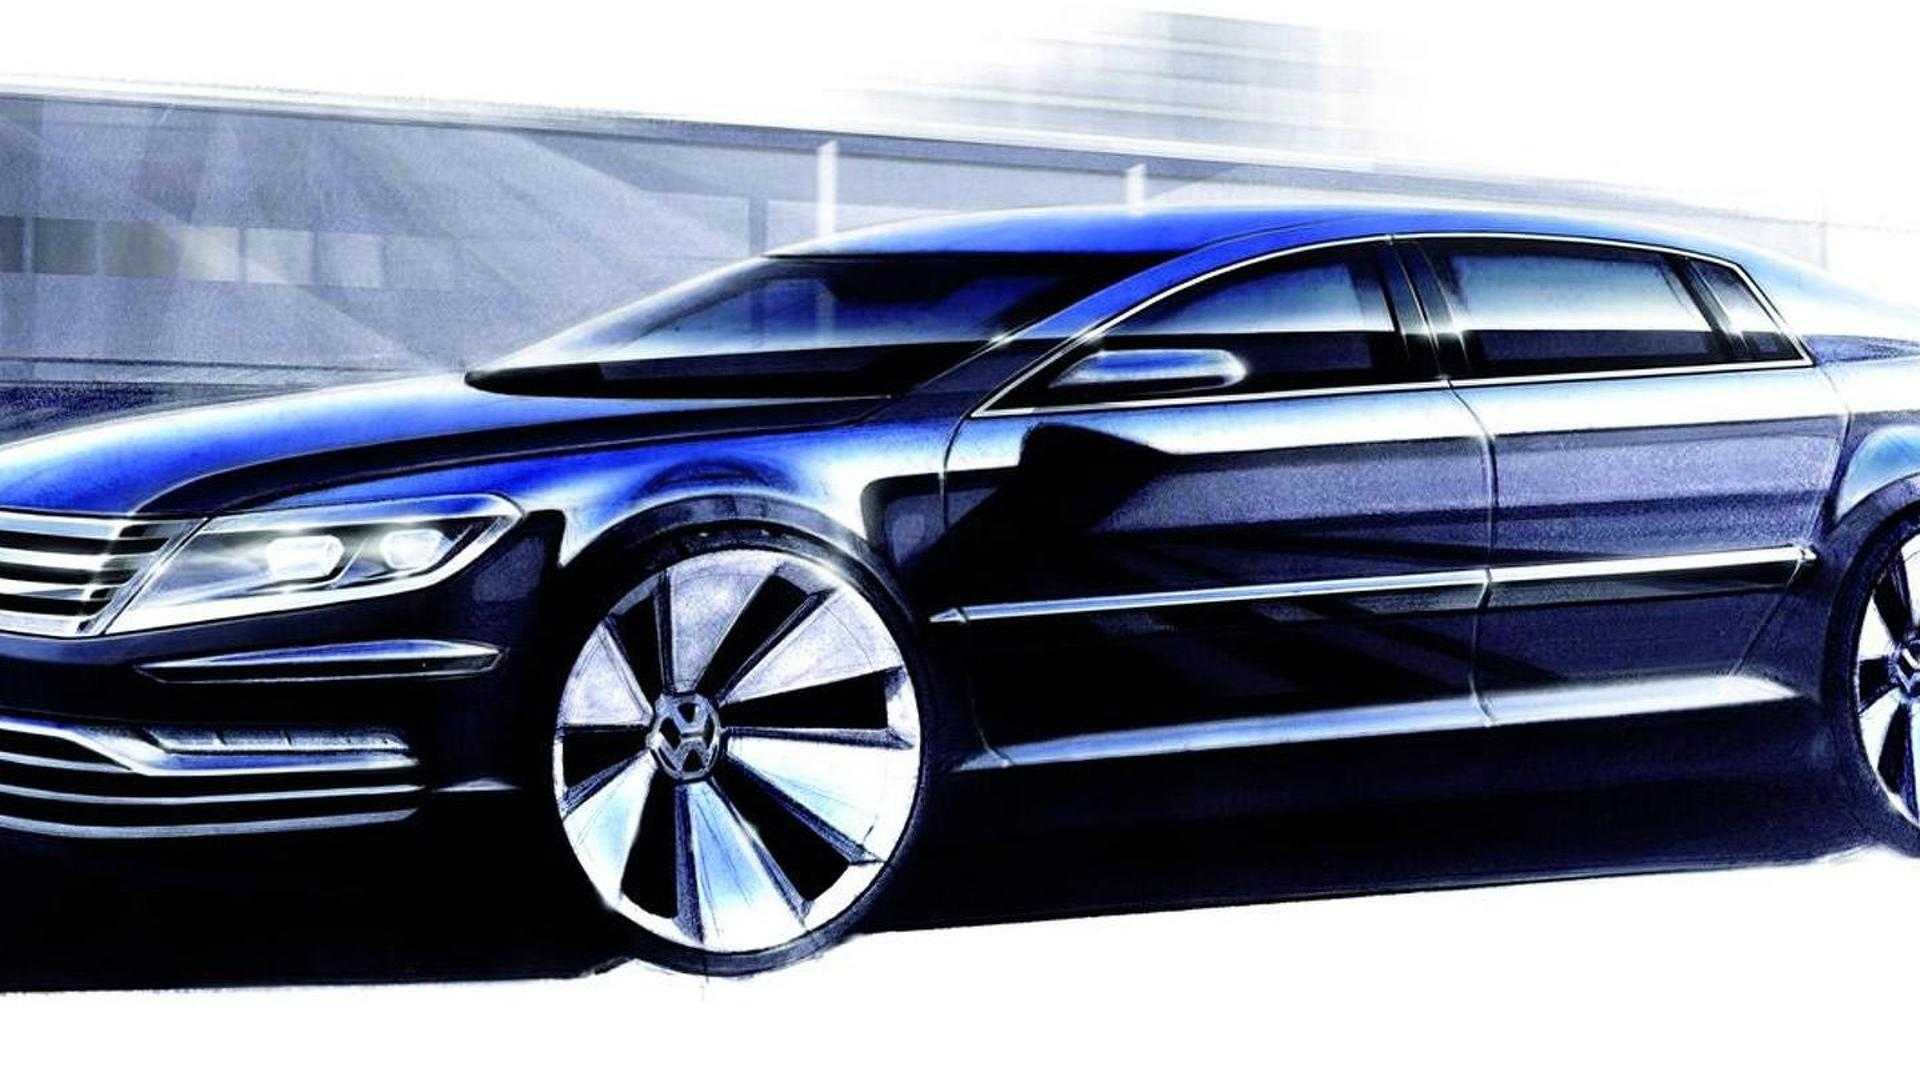 Next Volkswagen Phaeton to be positioned as a Chrysler 300 & Ford Taurus rival - report